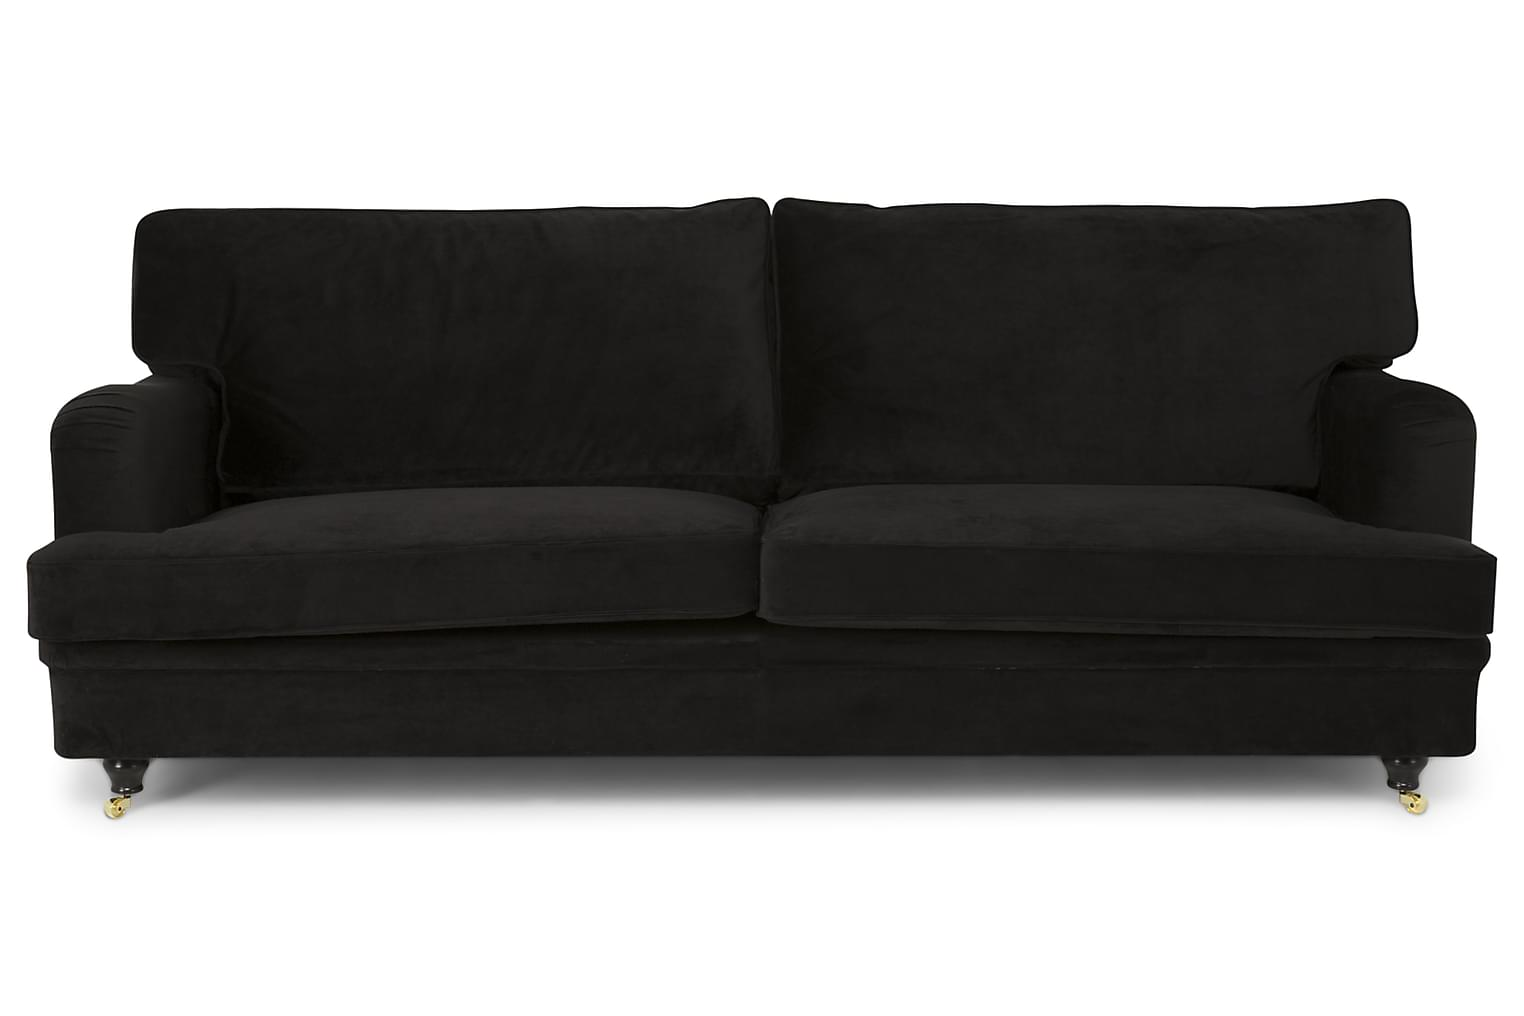 Yardley YARDLEY 4-sits Soffa Sammet Svart -